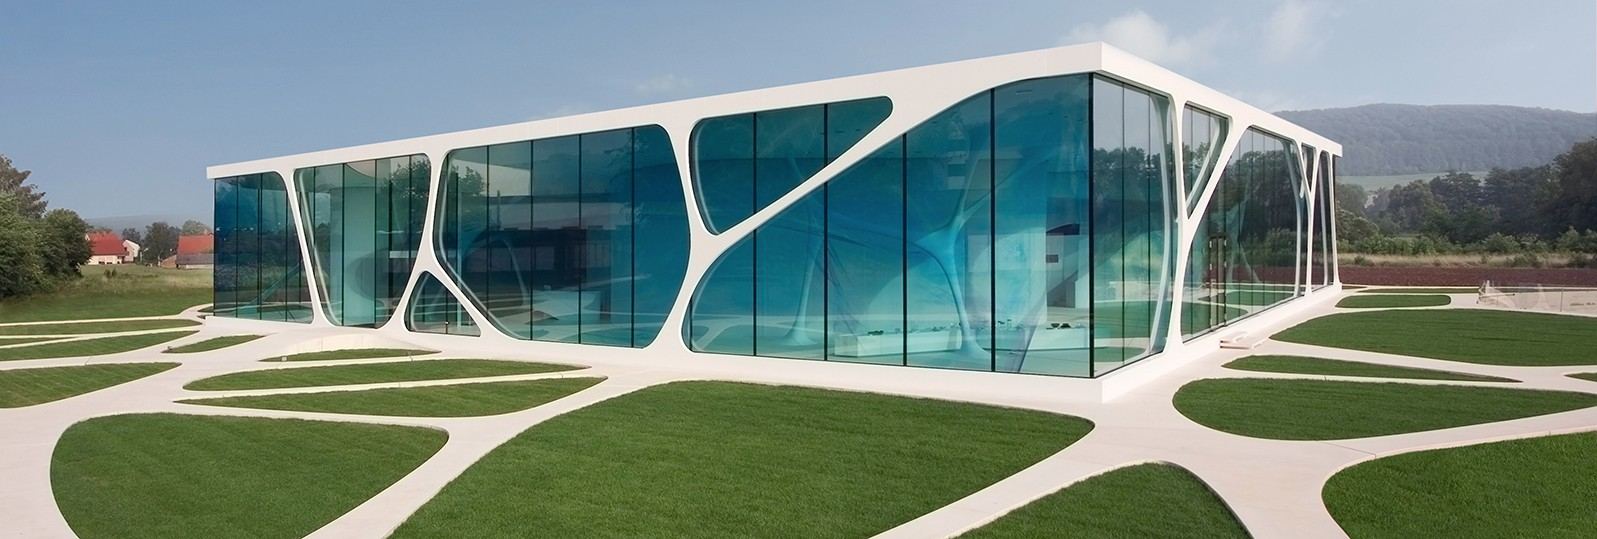 hi-macs leonardo glass cube germany exterior cladding white